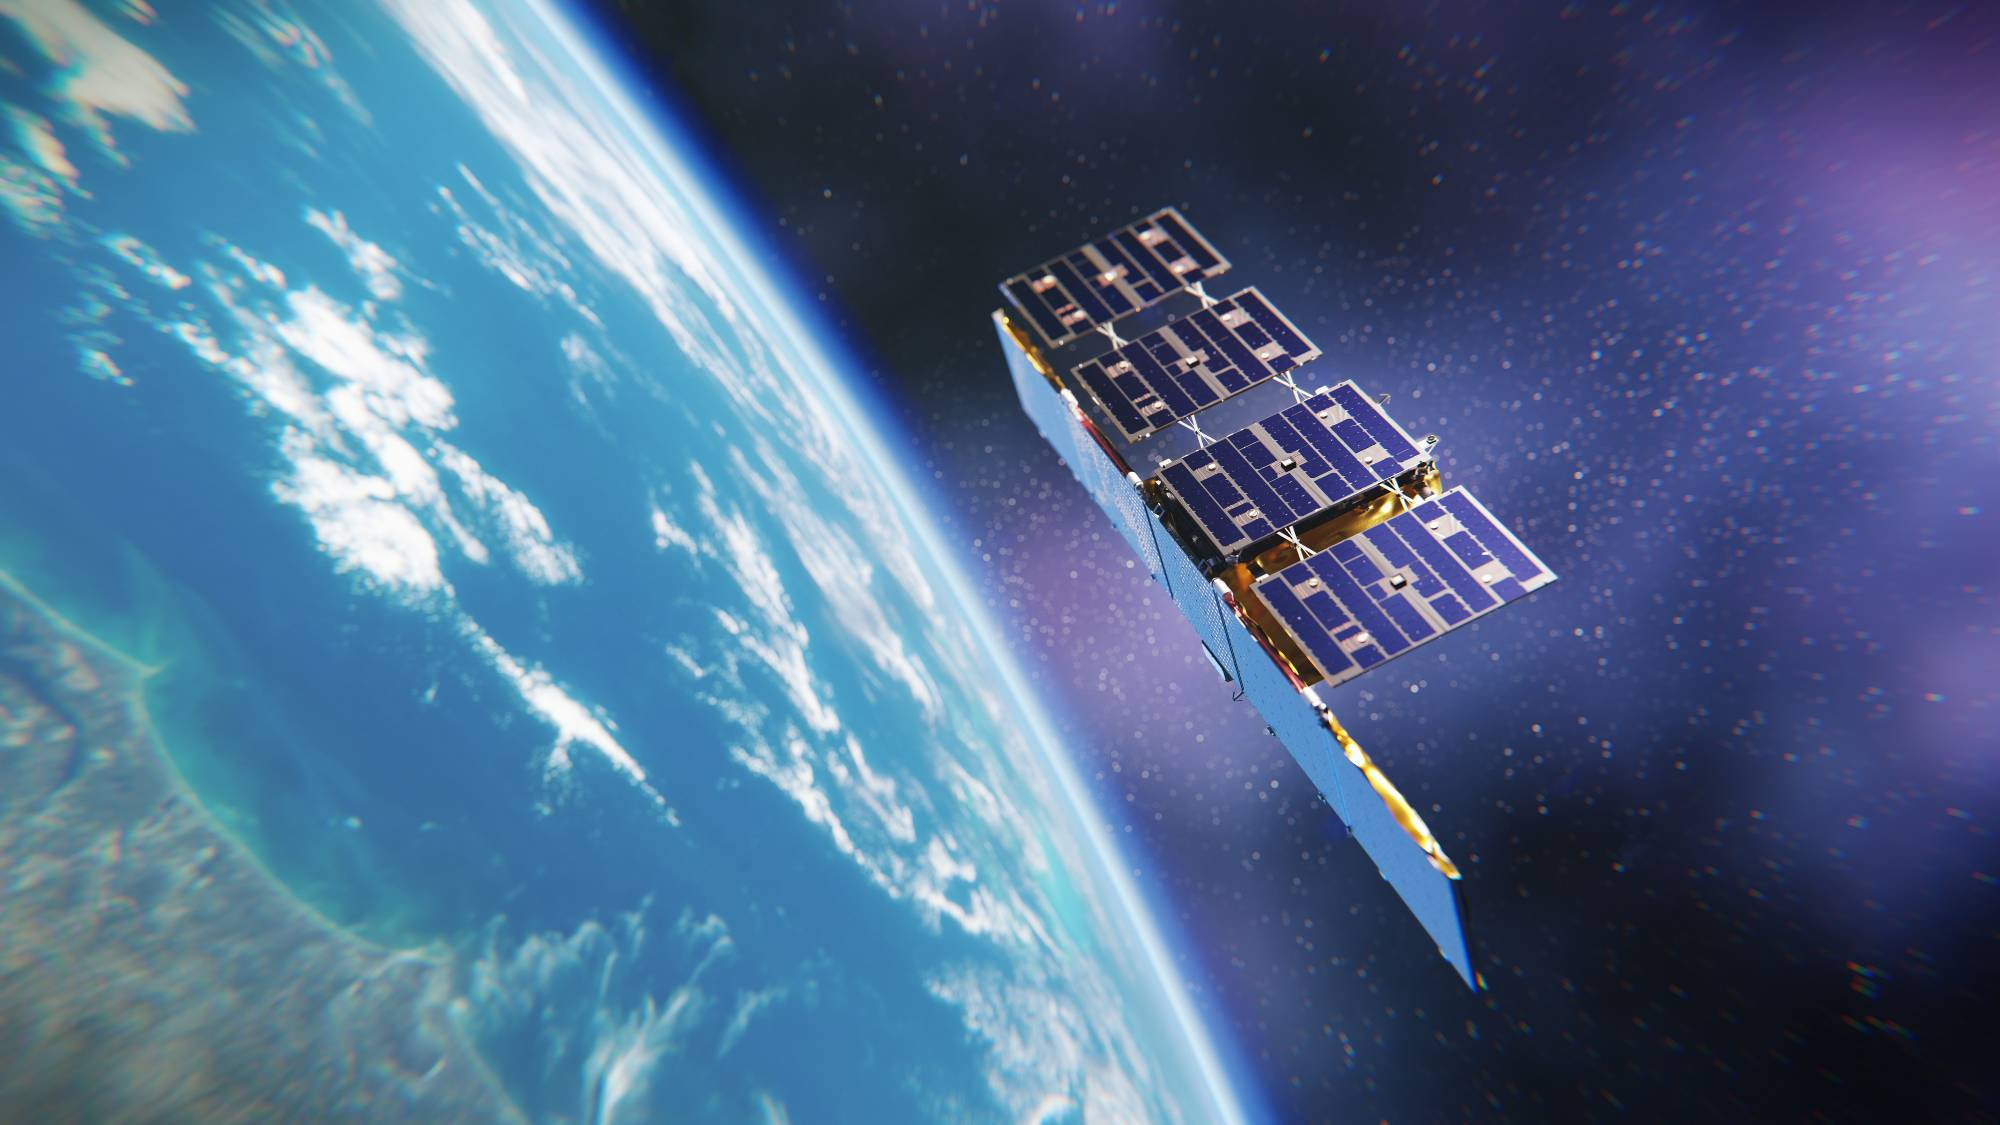 An artist's illustration of a synthetic aperture-radar satellite orbiting the Earth.